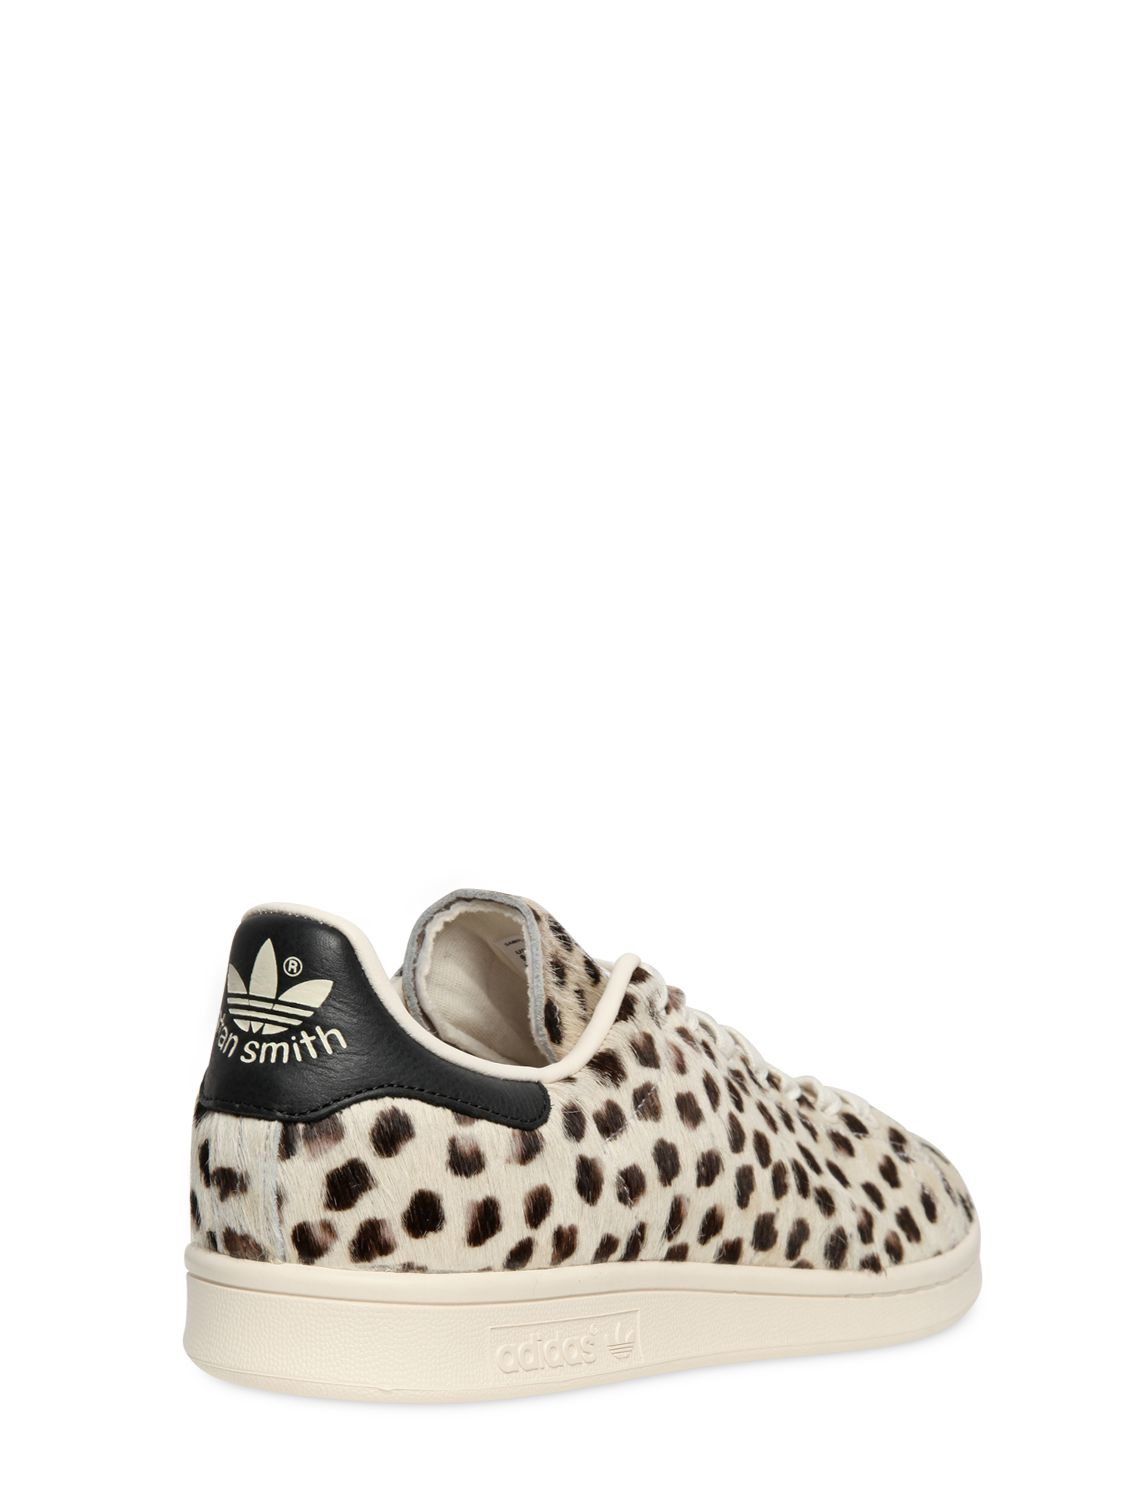 Adidas Stan Smith Cheetah